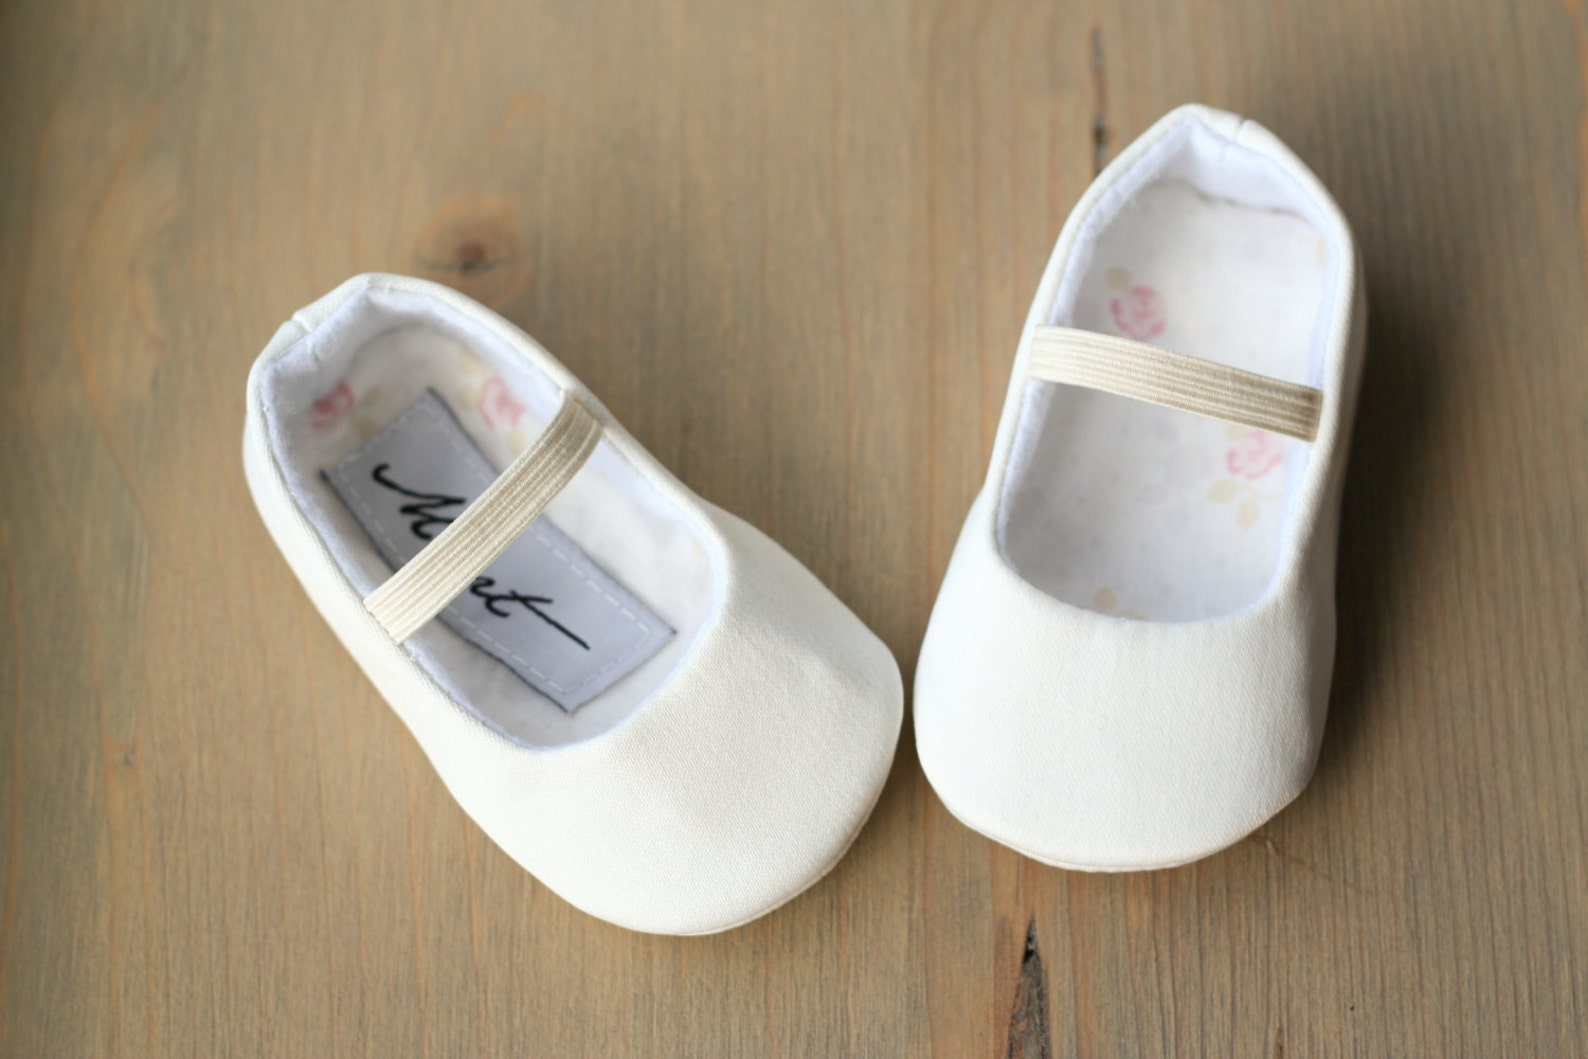 plain white baby ballet slippers, christening shoes, ivory ballerina flats, plain baptism shoes, baby wedding outfit, flower gir